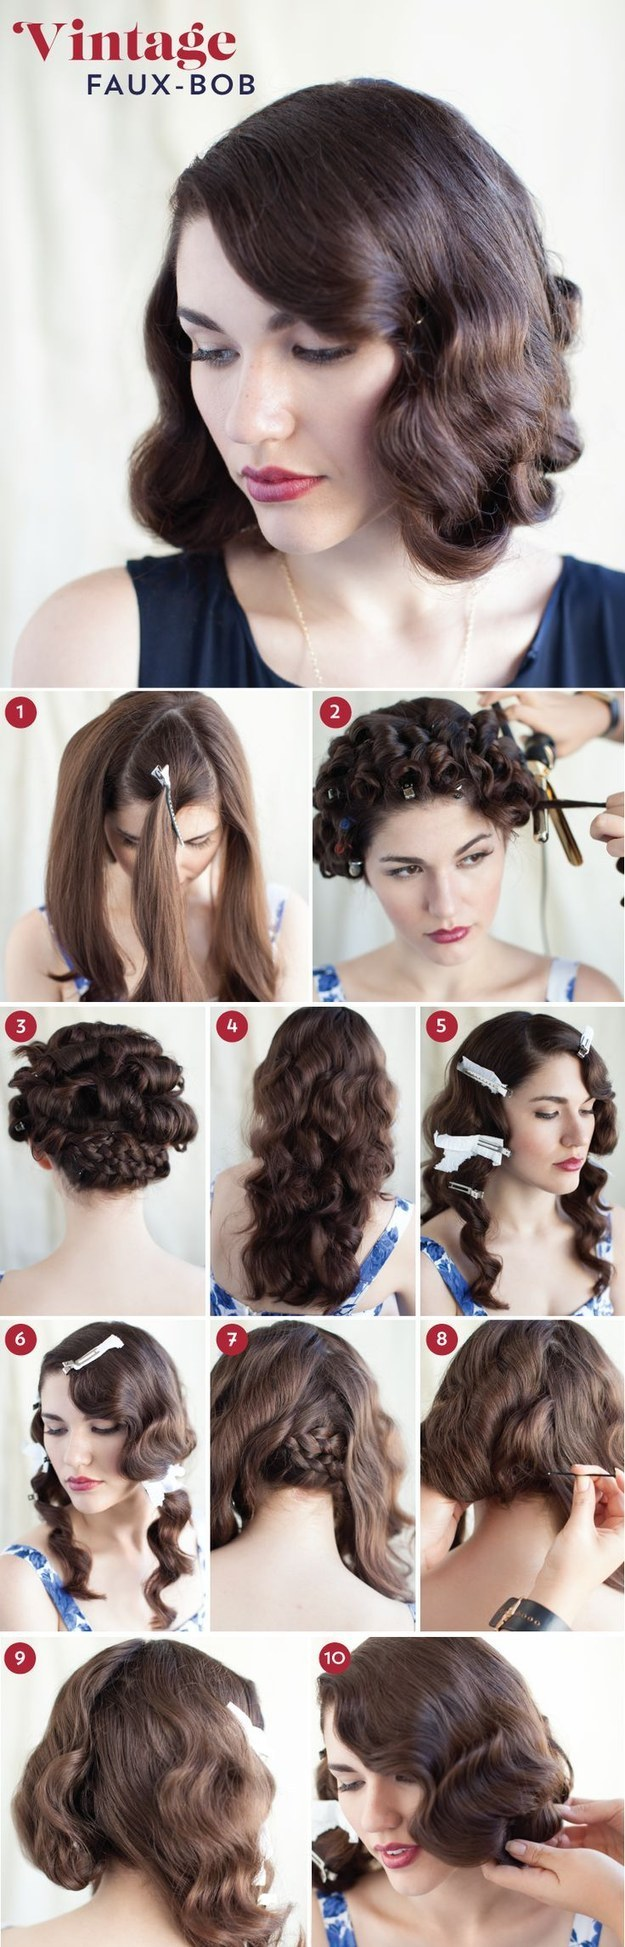 30 DIY Vintage Hairstyle Tutorials for Short Medium Long Hair Pretty Designs